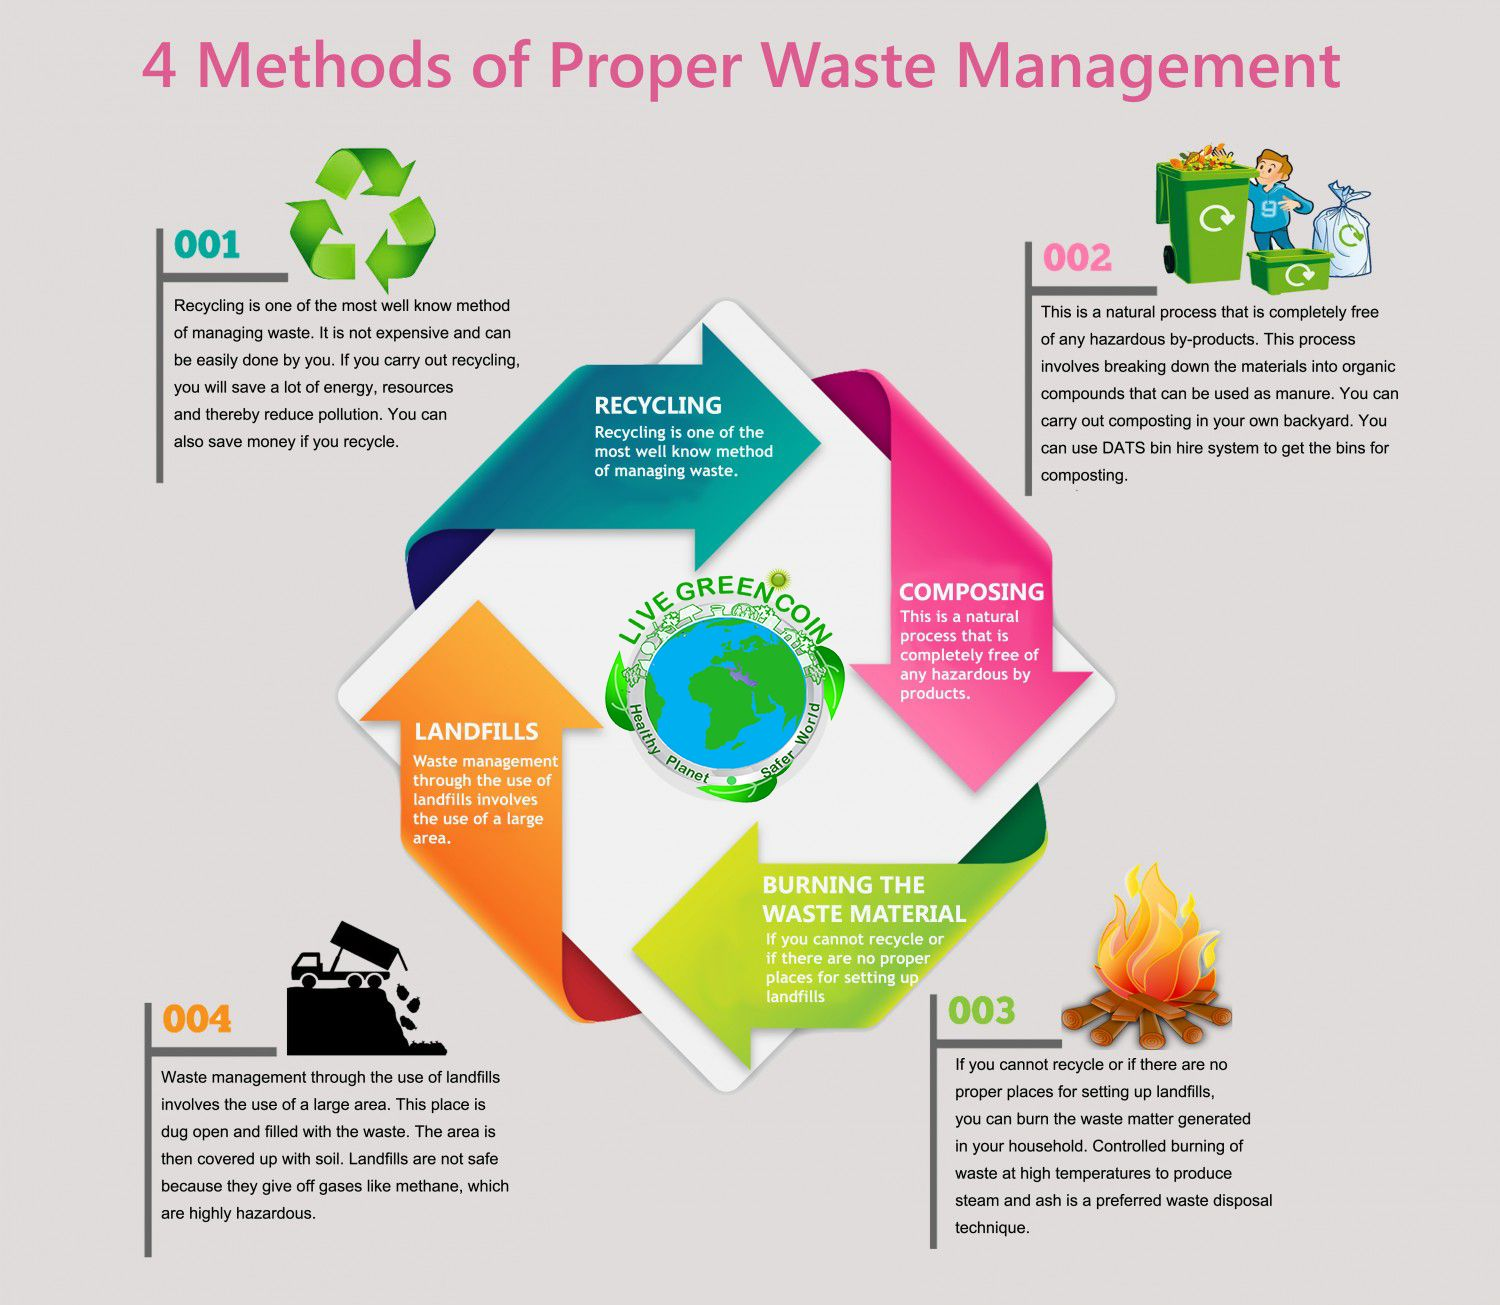 Pin by Nayyer Abbas on waste management | Waste to energy, Waste